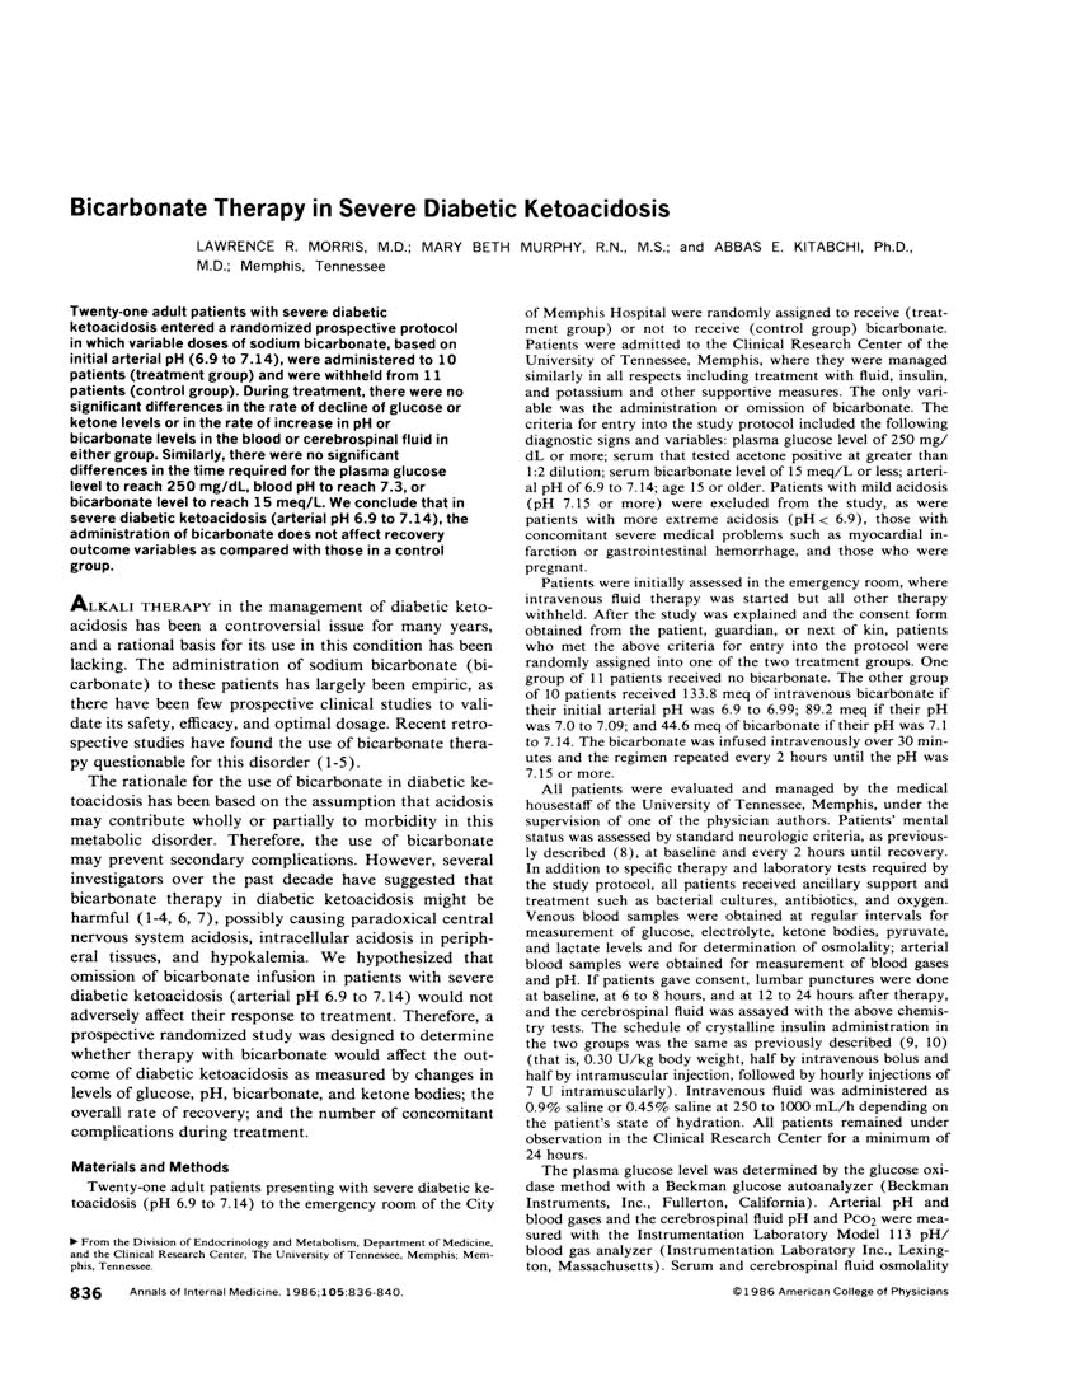 Why Are Bicarbonate Levels Low In Dka?